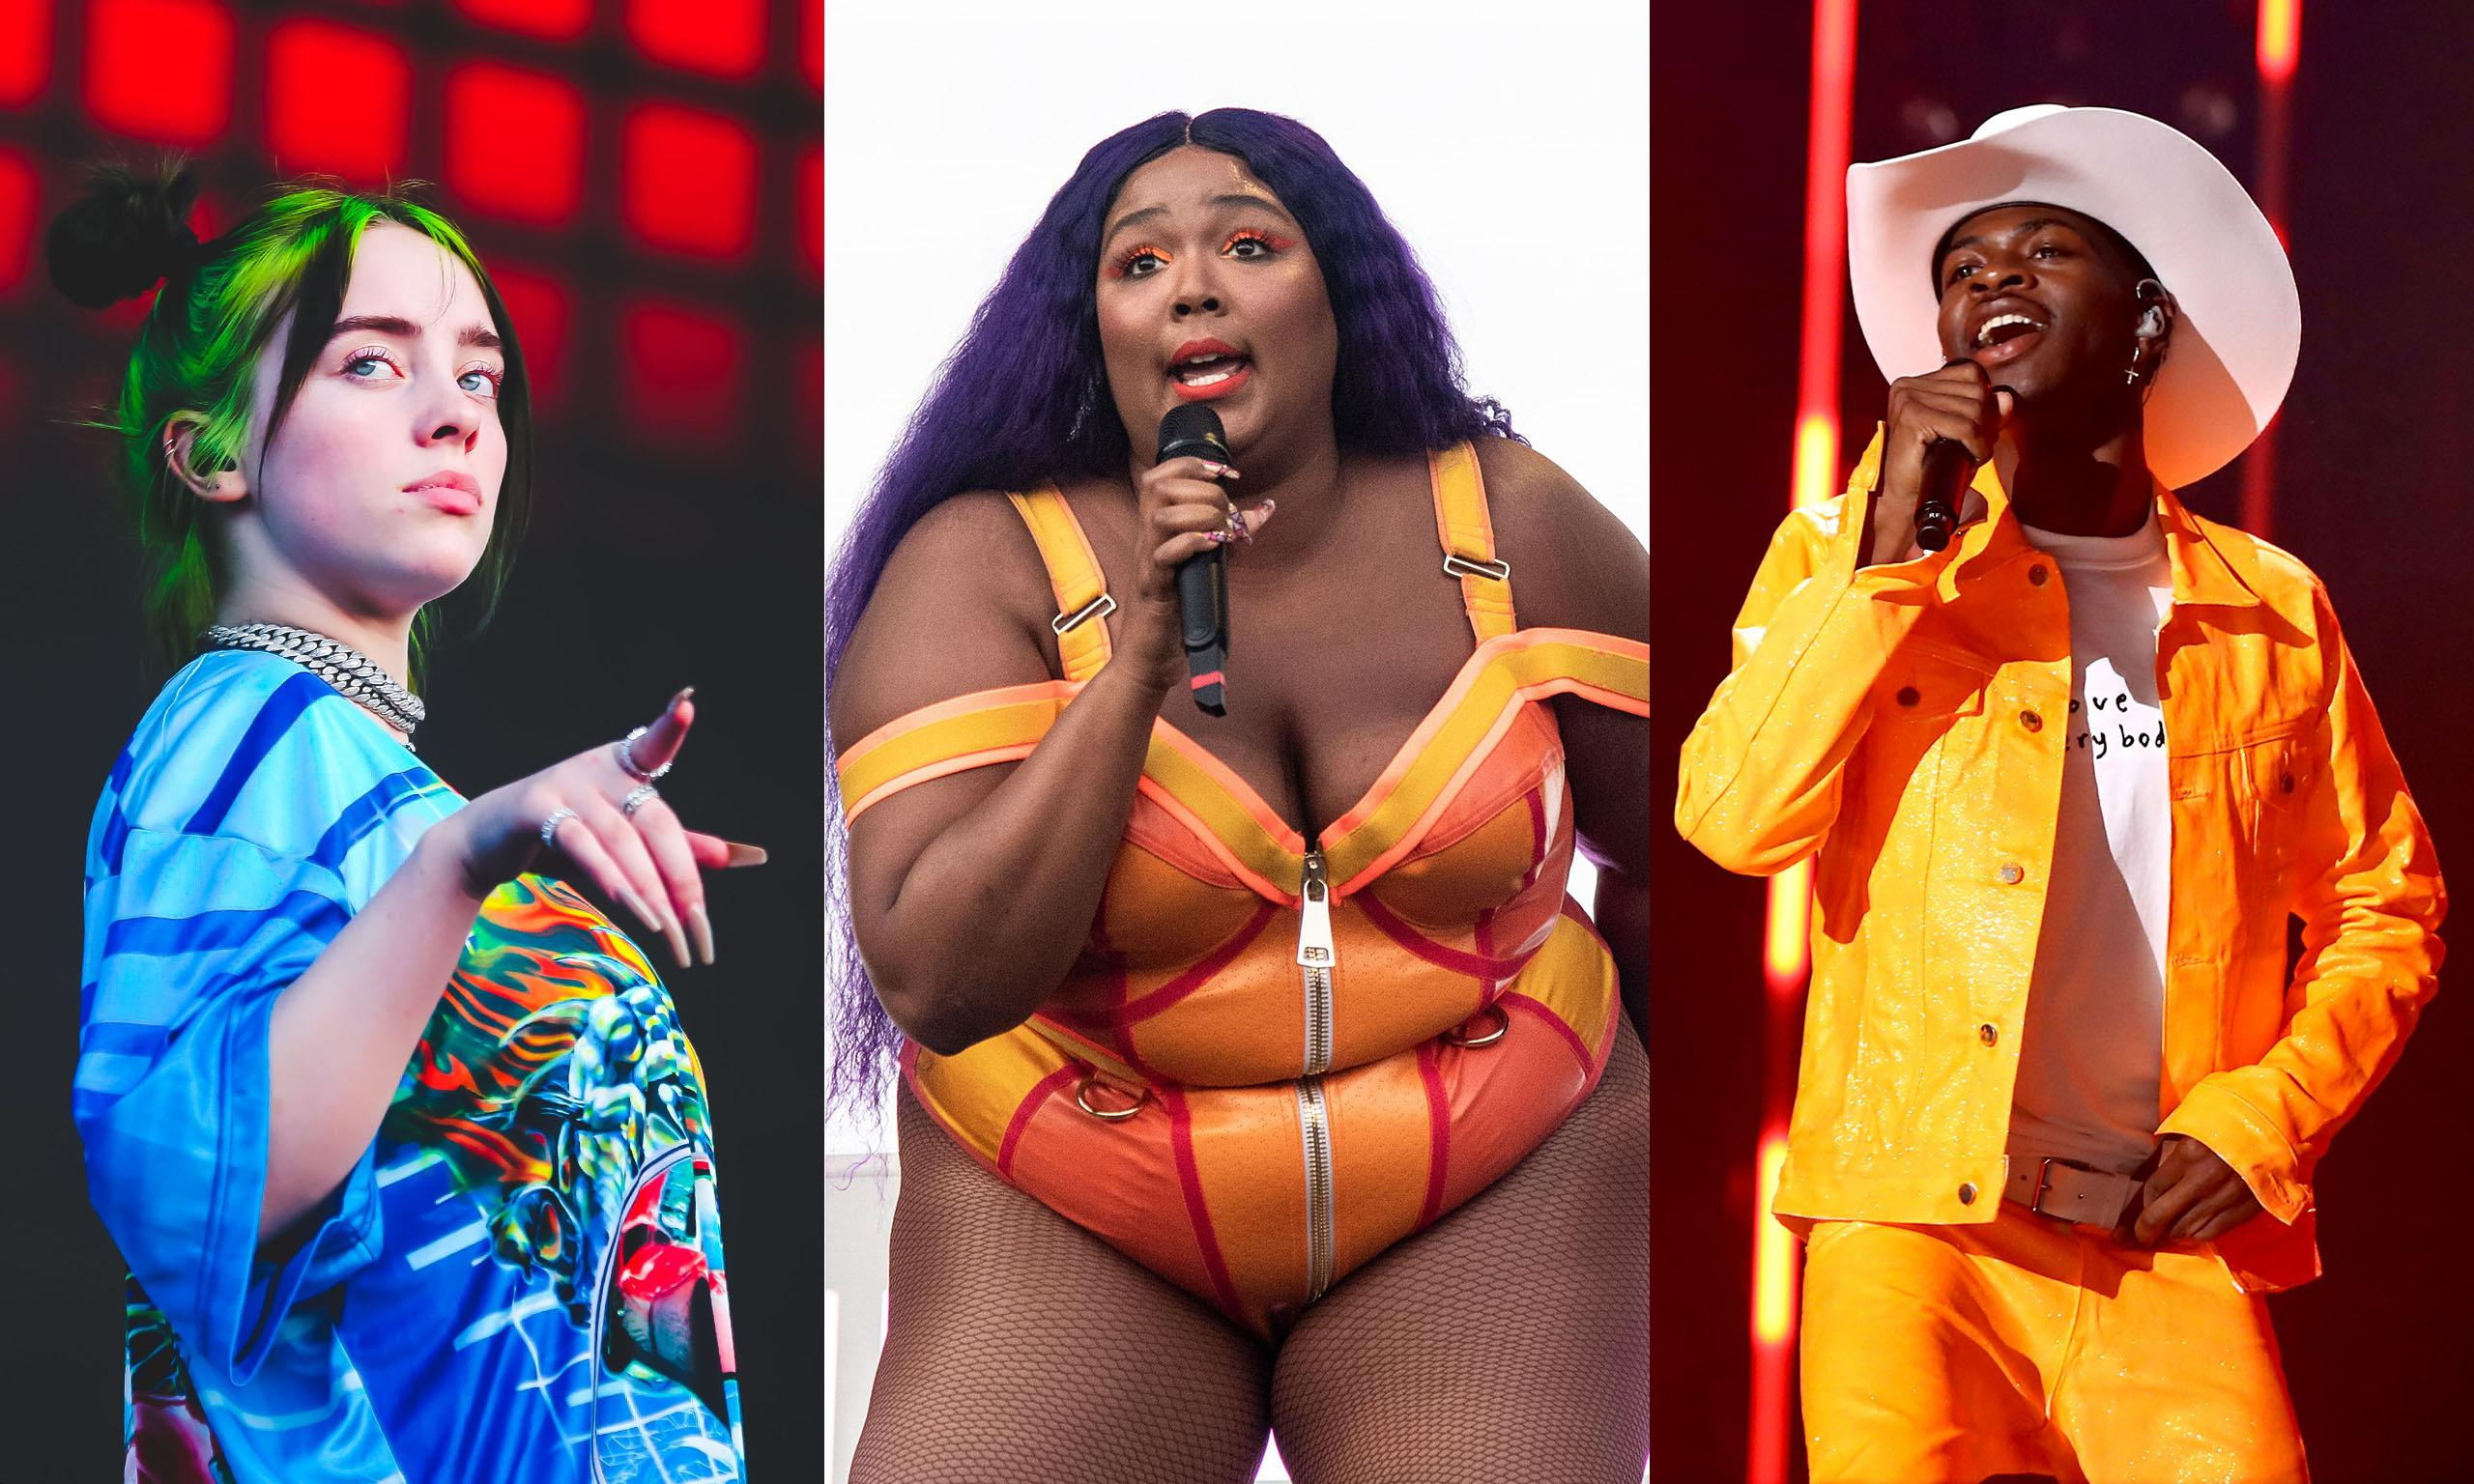 Lizzo, Billie Eilish and Lil Nas X top 2020 Grammy nominations